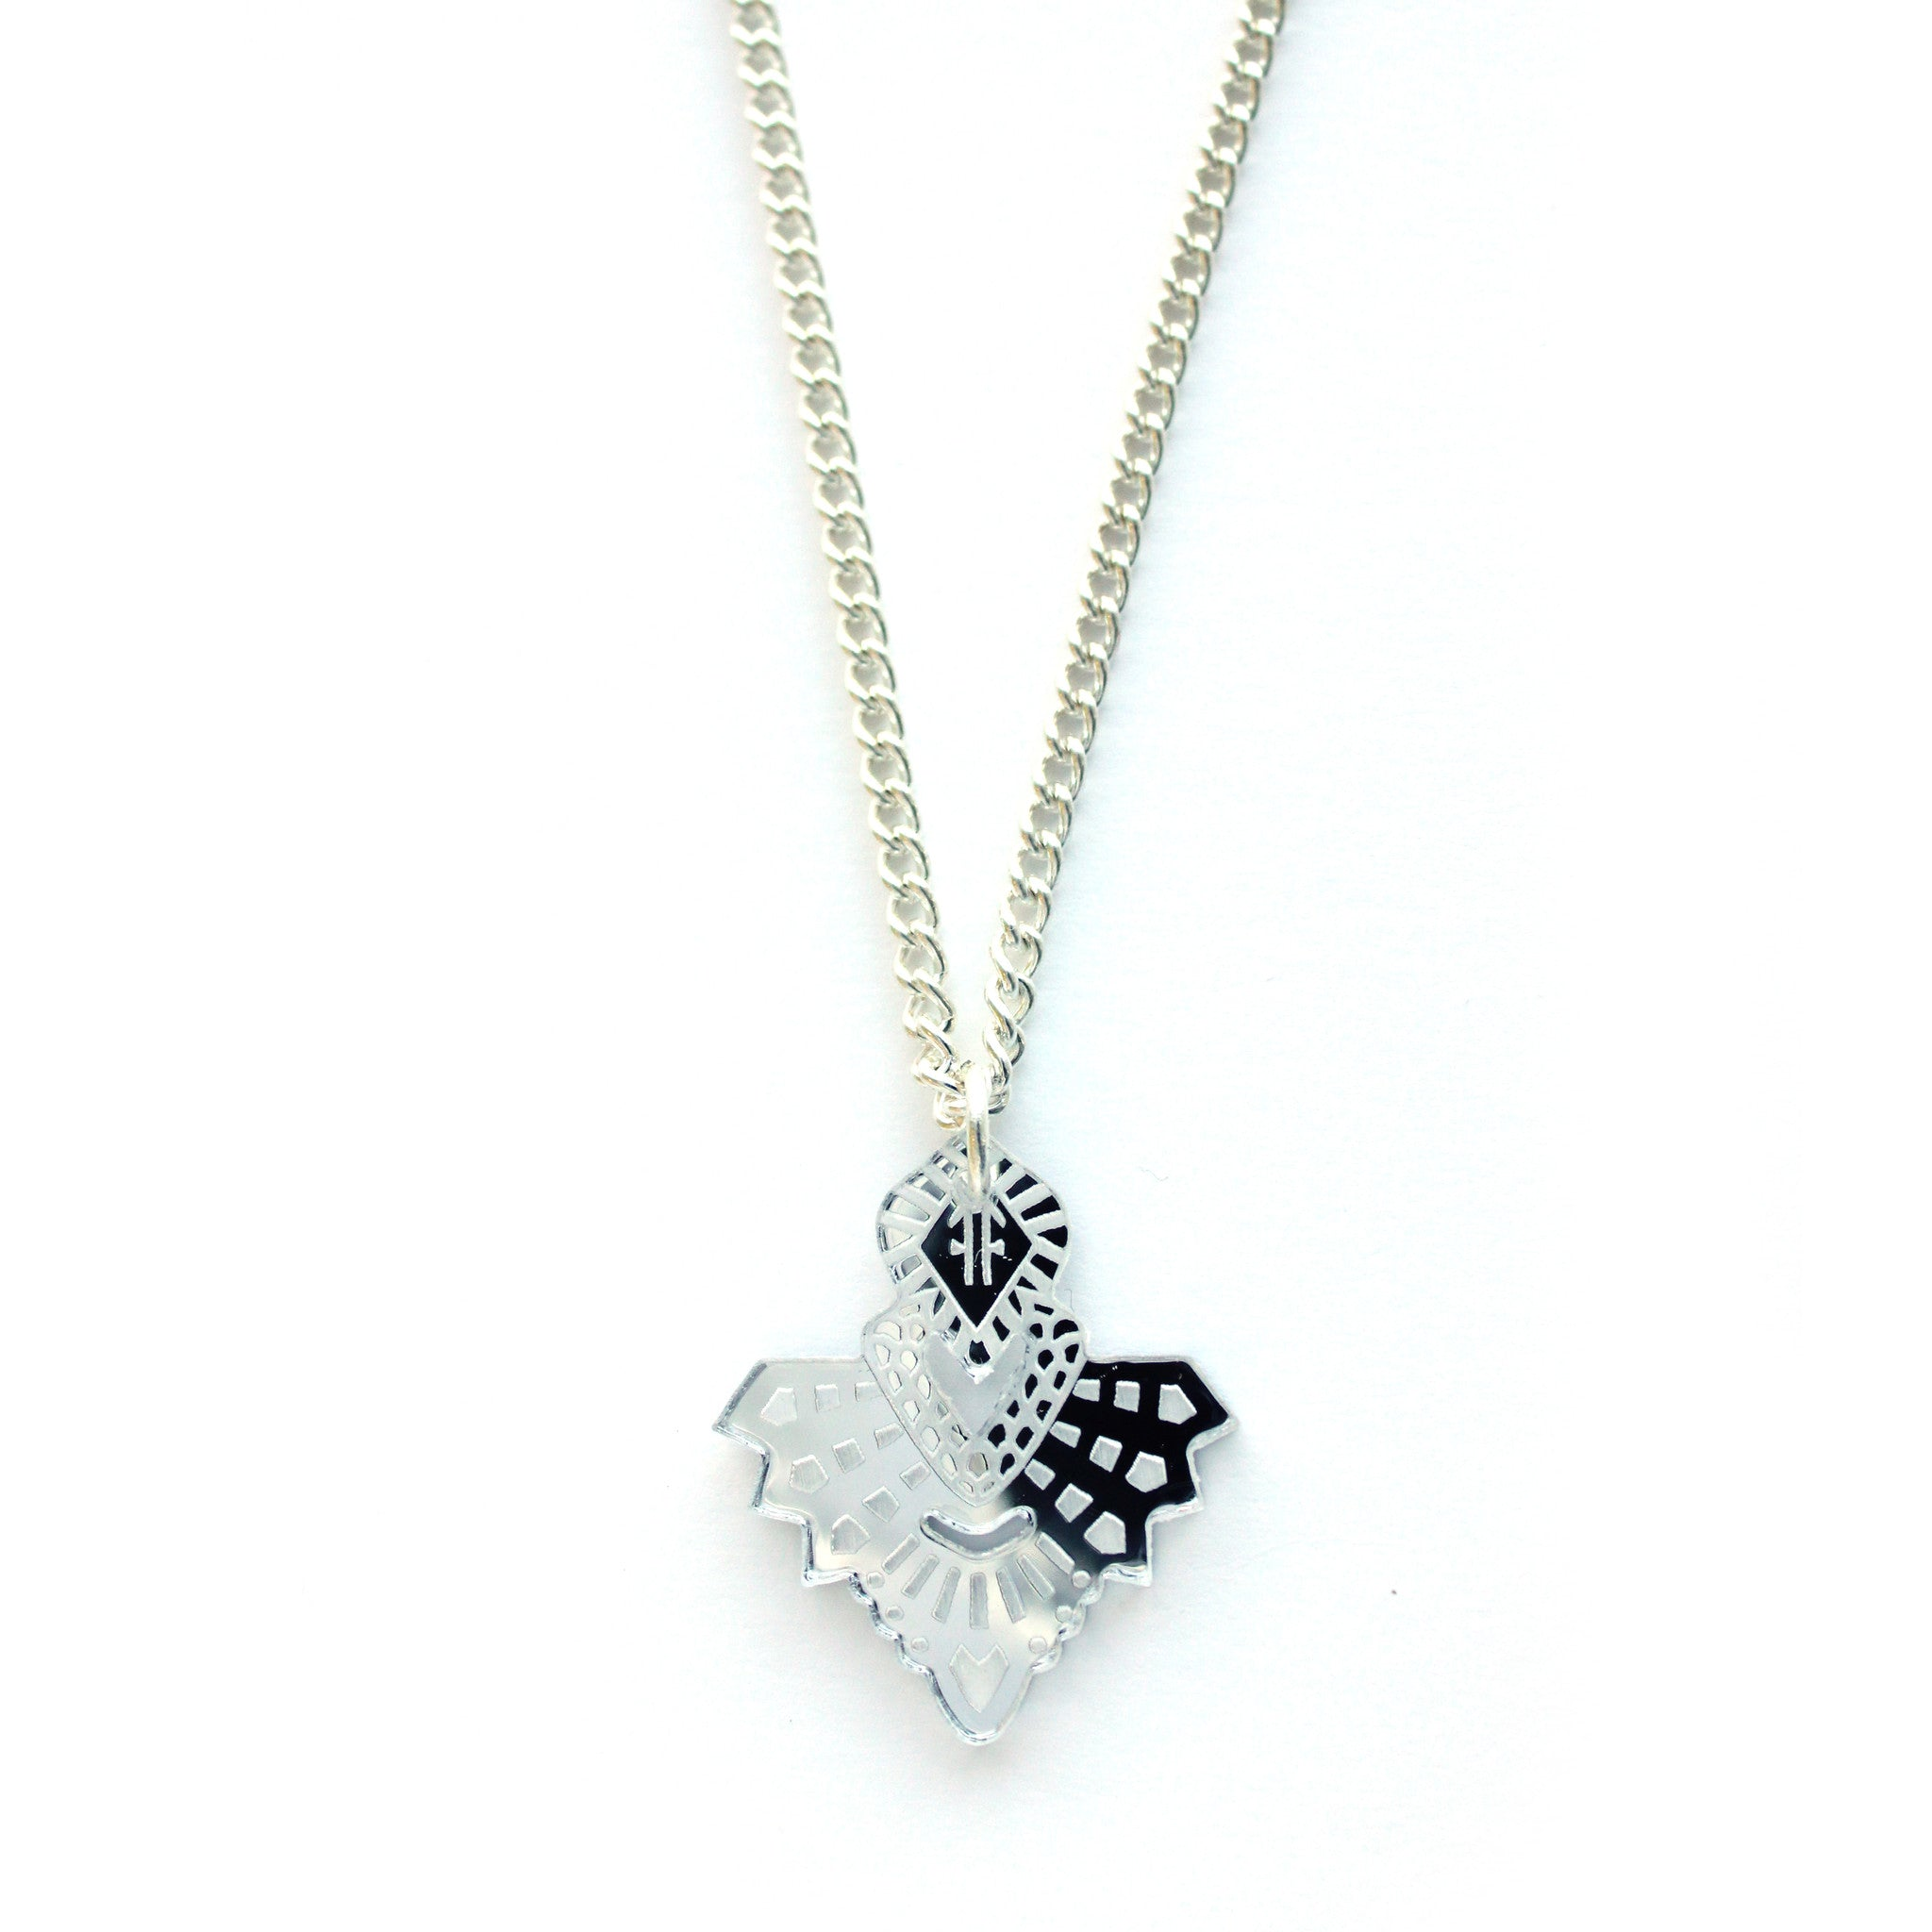 Mini Metta Necklace - Silver